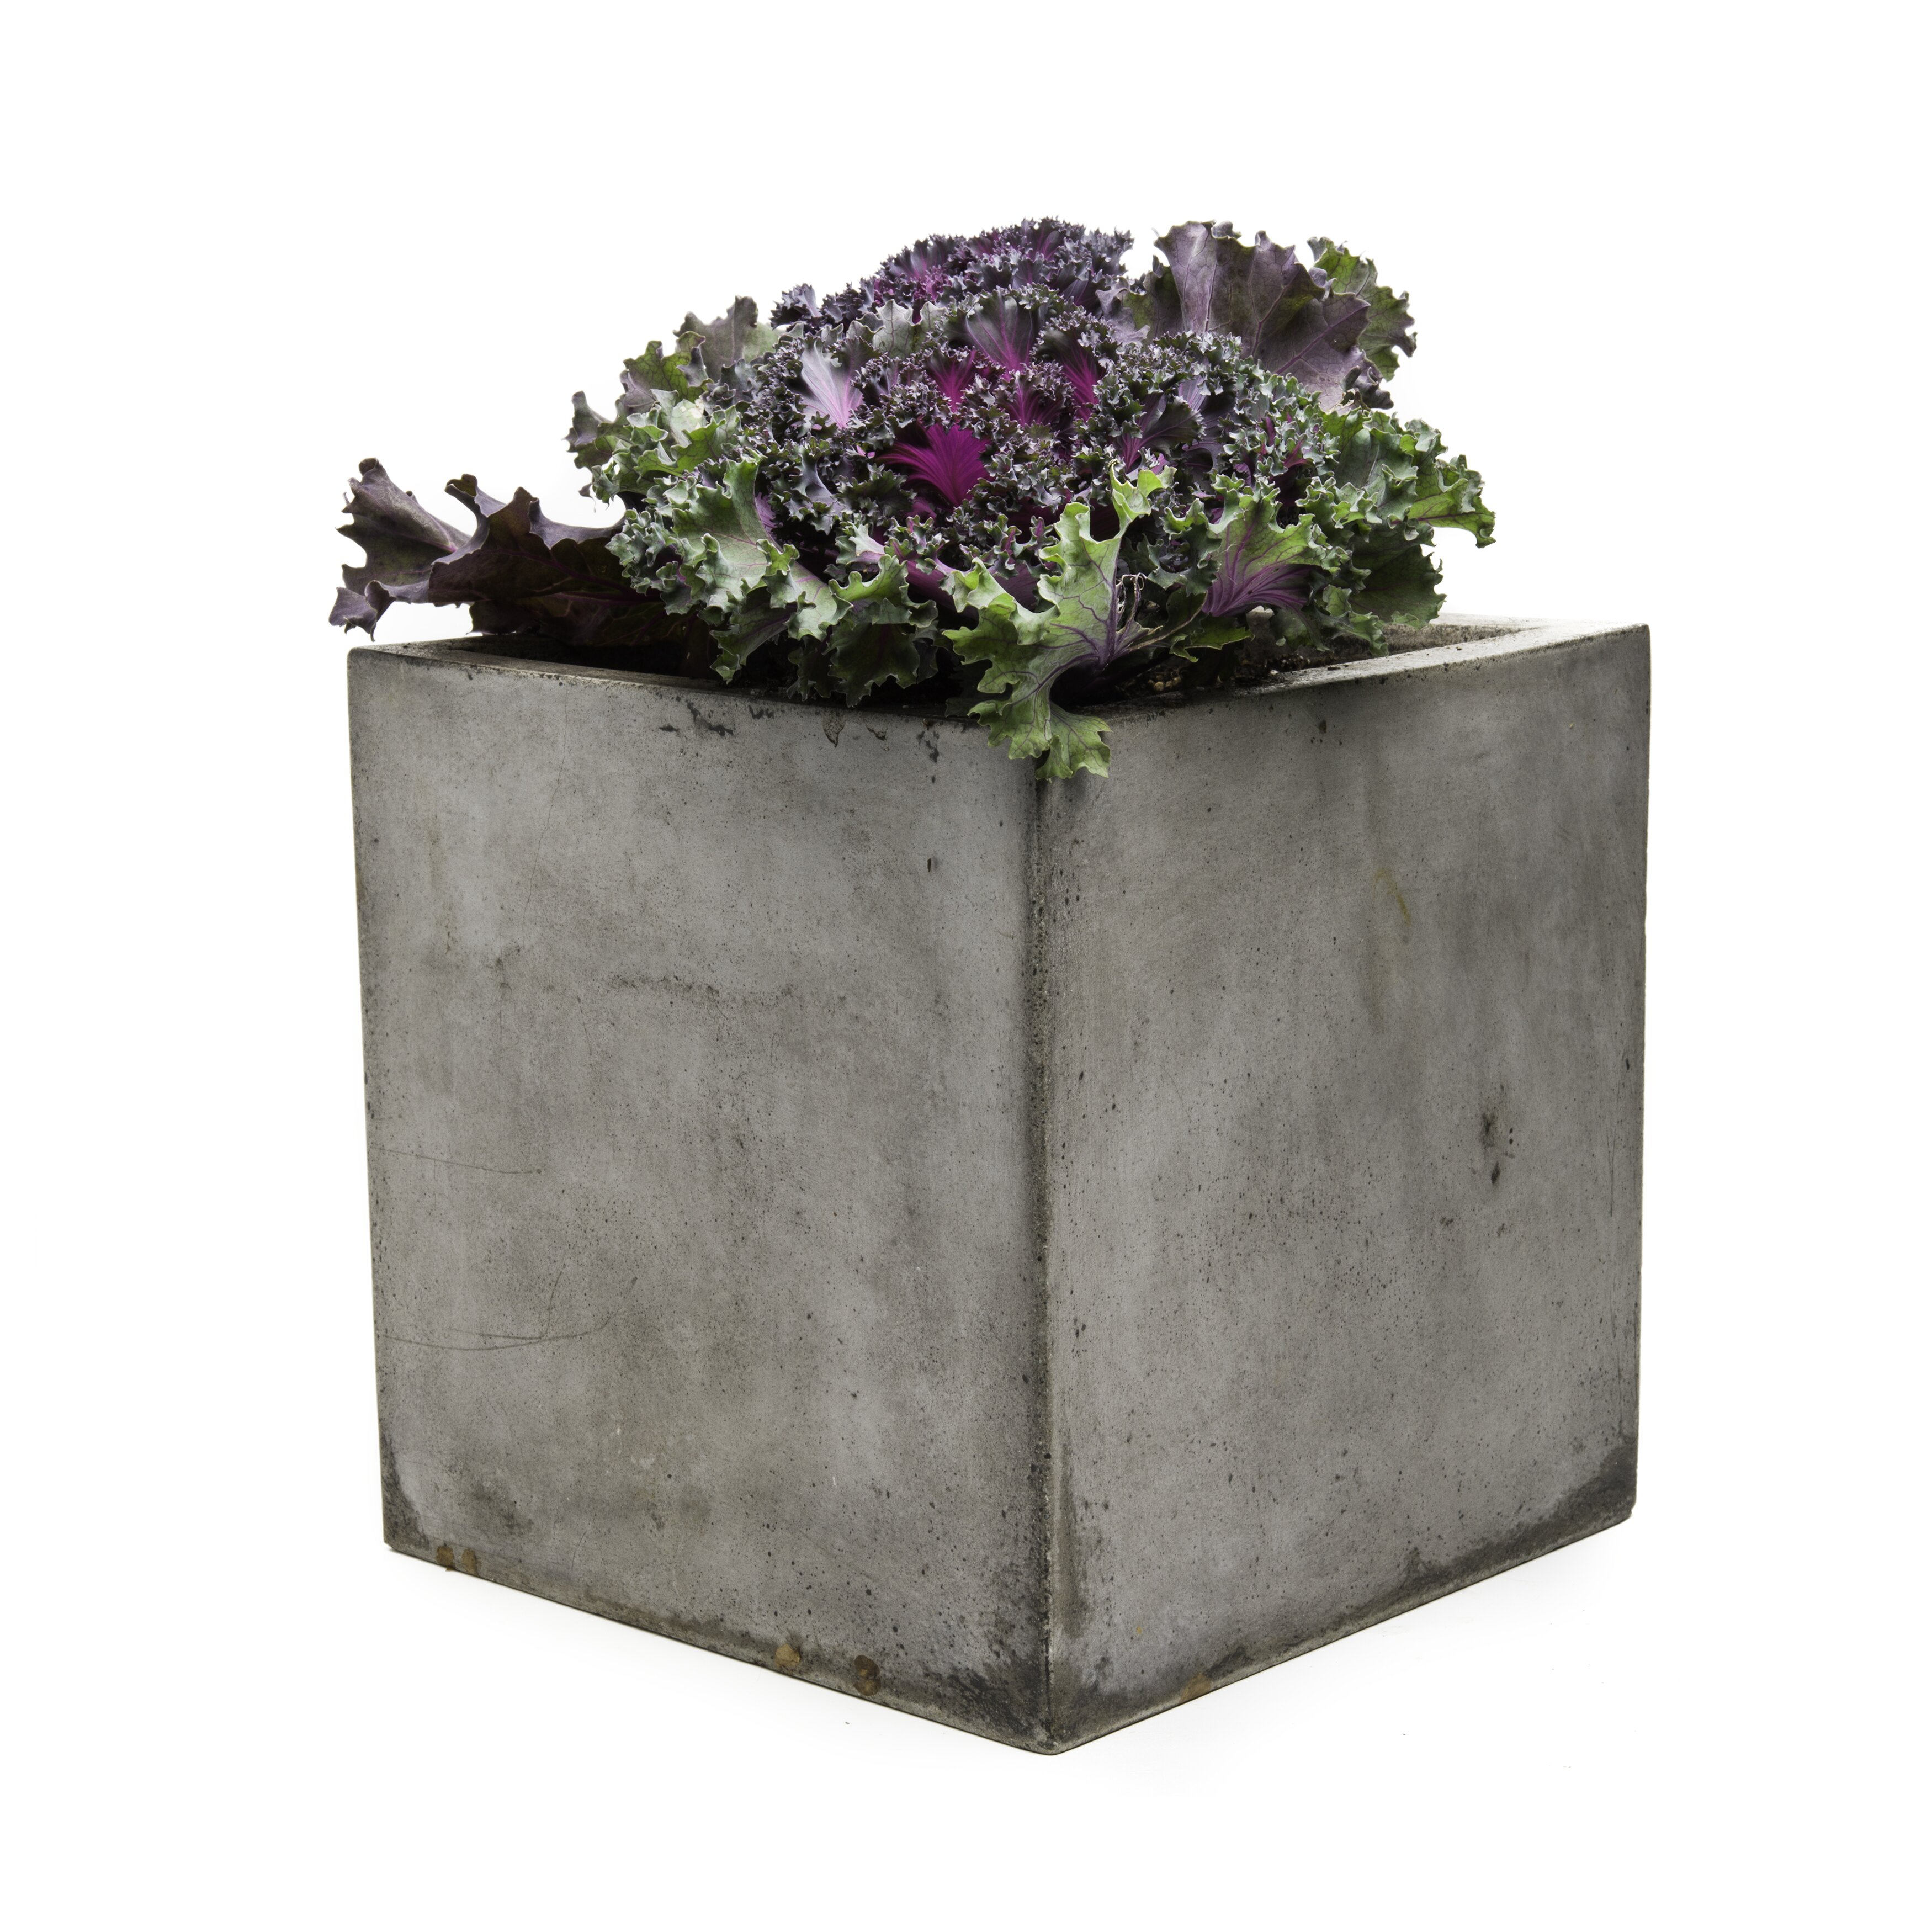 My Spirit Garden Cub Composite Planter Box Reviews Wayfair